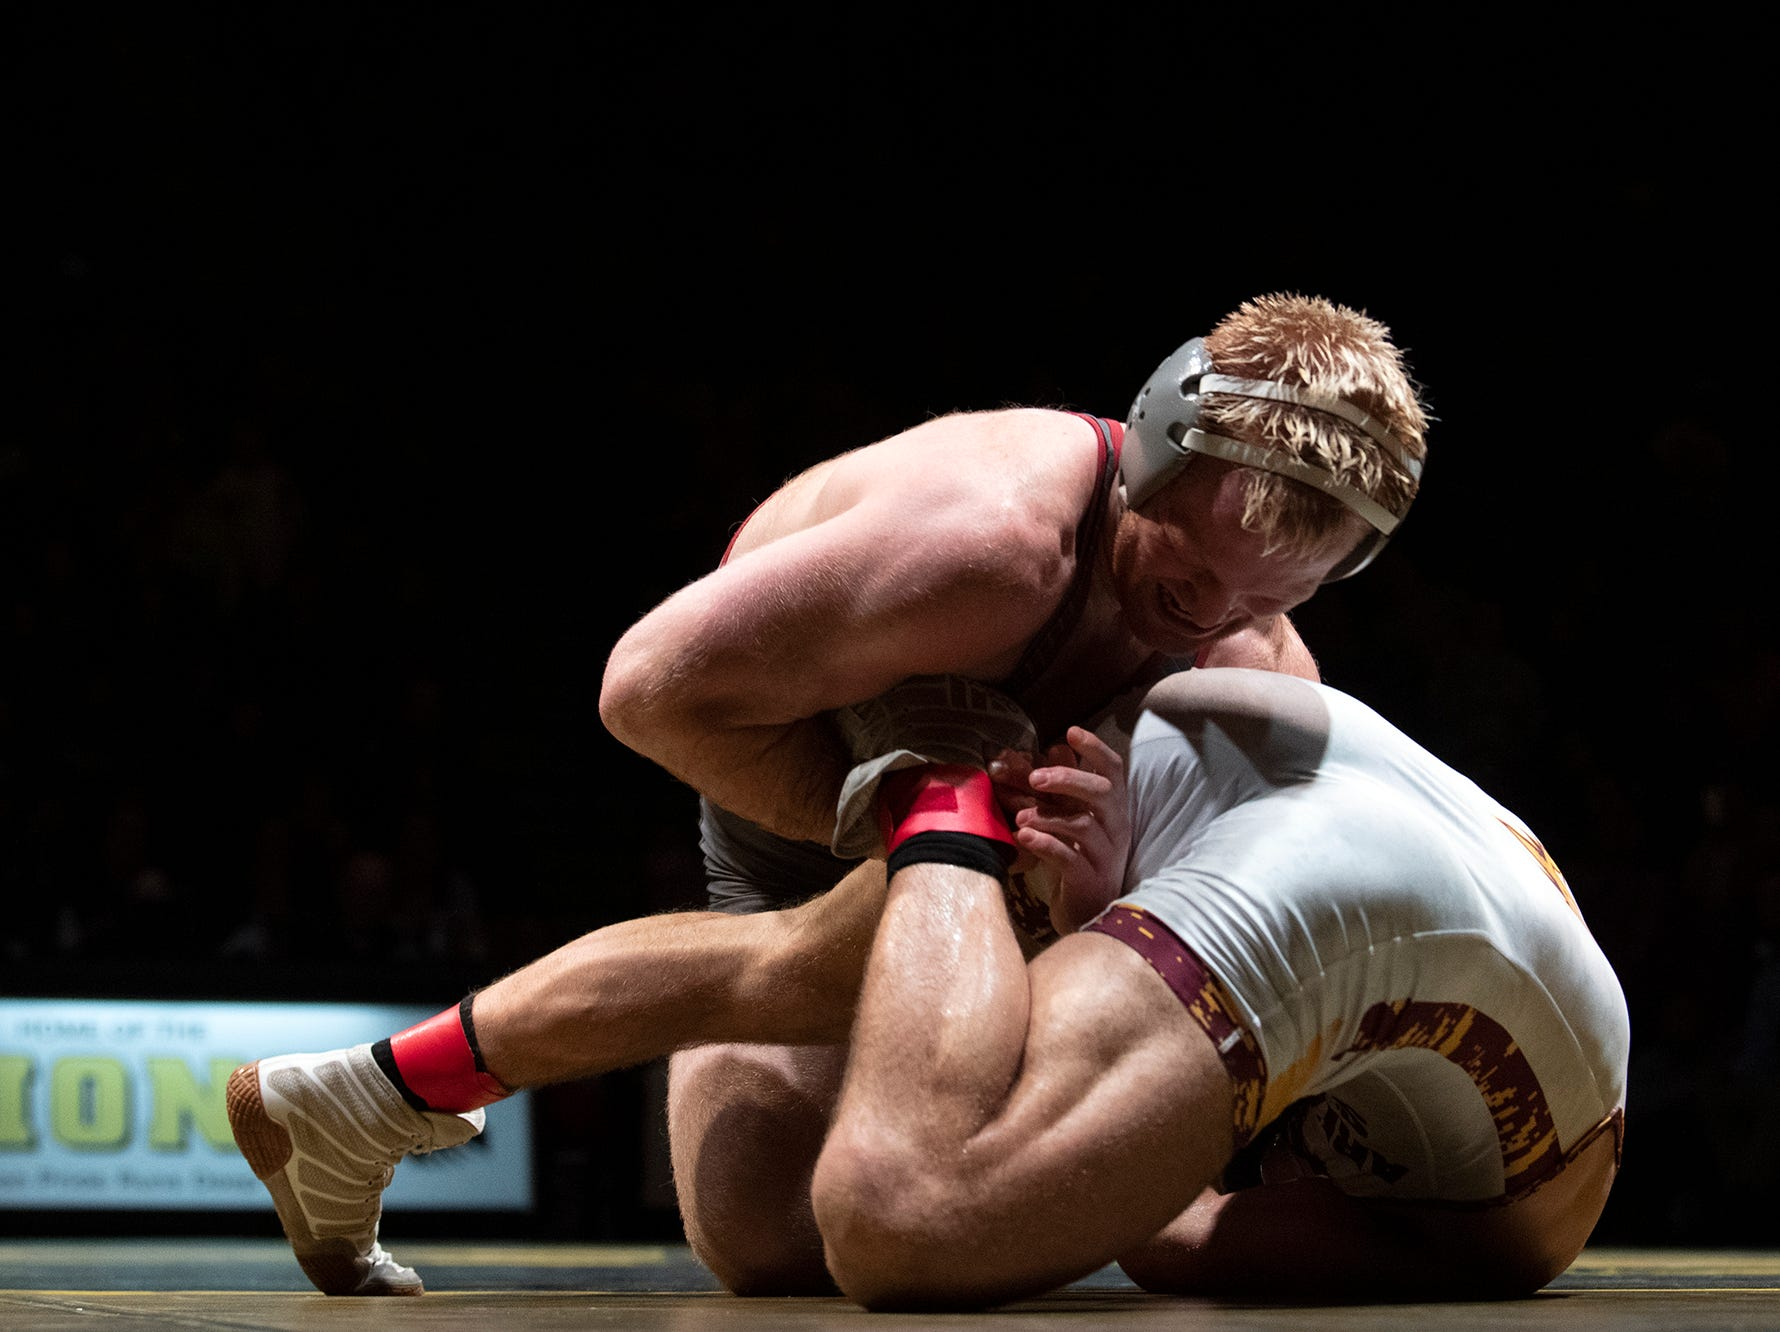 Lock Haven's Chance Marsteller, top, wrestles with Arizona State's Josh Shields during the 165-pound bout at Red Lion's Fitzkee Athletic Center on Friday, Jan. 25, 2019. Shields (No. 5) beat Marsteller (No. 4), 2-1, in a tiebreaker. No. 22 Lock Haven upset No. 12 Arizona State, 23-14, in the first ever 'Rumble in the Jungle.'